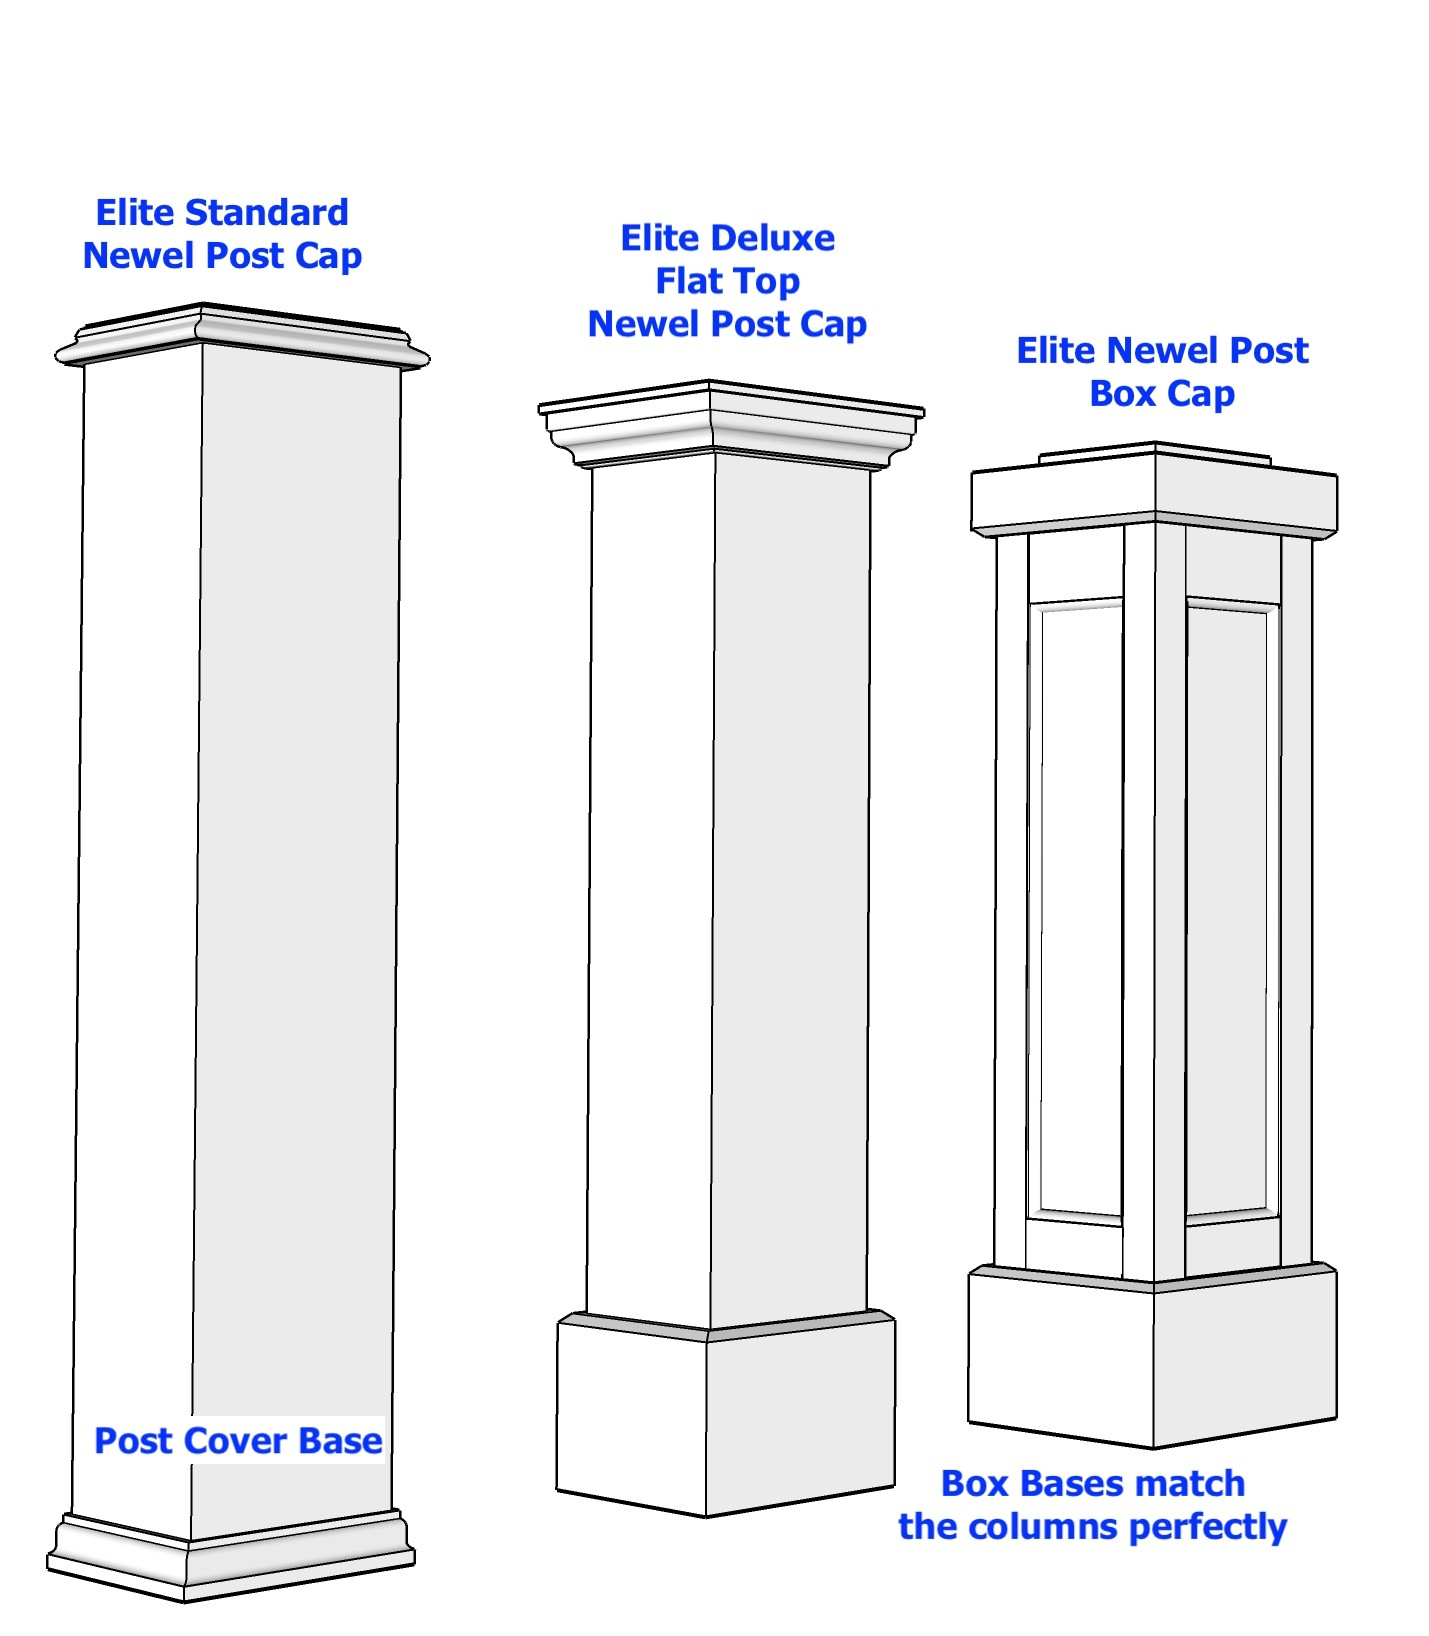 Flat Top Newel Post Capital